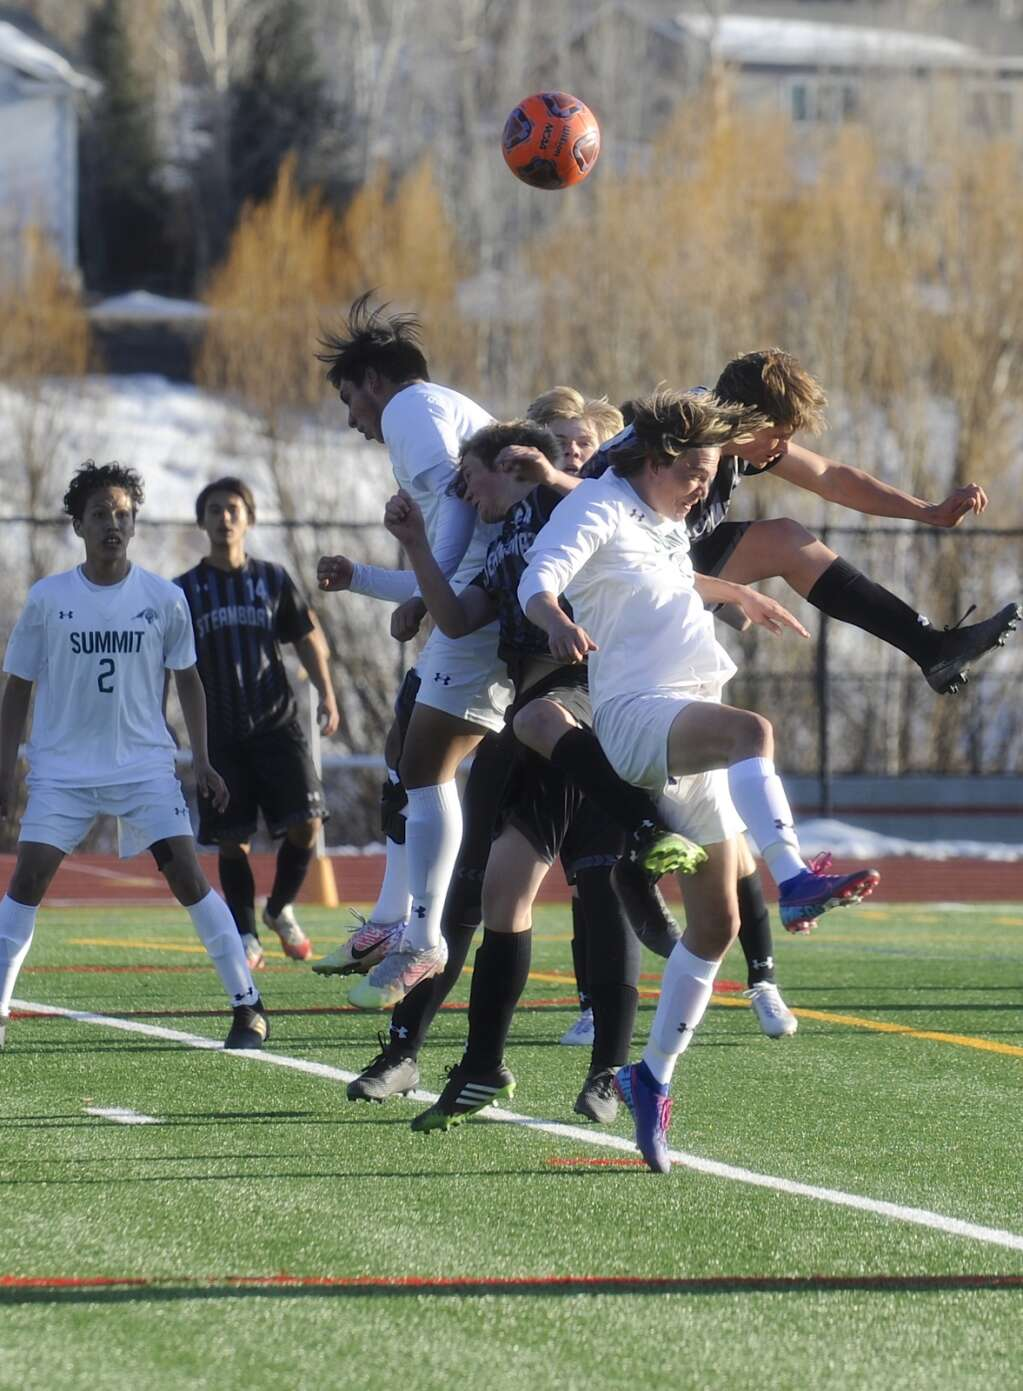 A flurry of heads go up for a ball during a game between Steamboat Springs and Summit at Gardner Field on Wednesday evening. (Photo by Shelby Reardon)